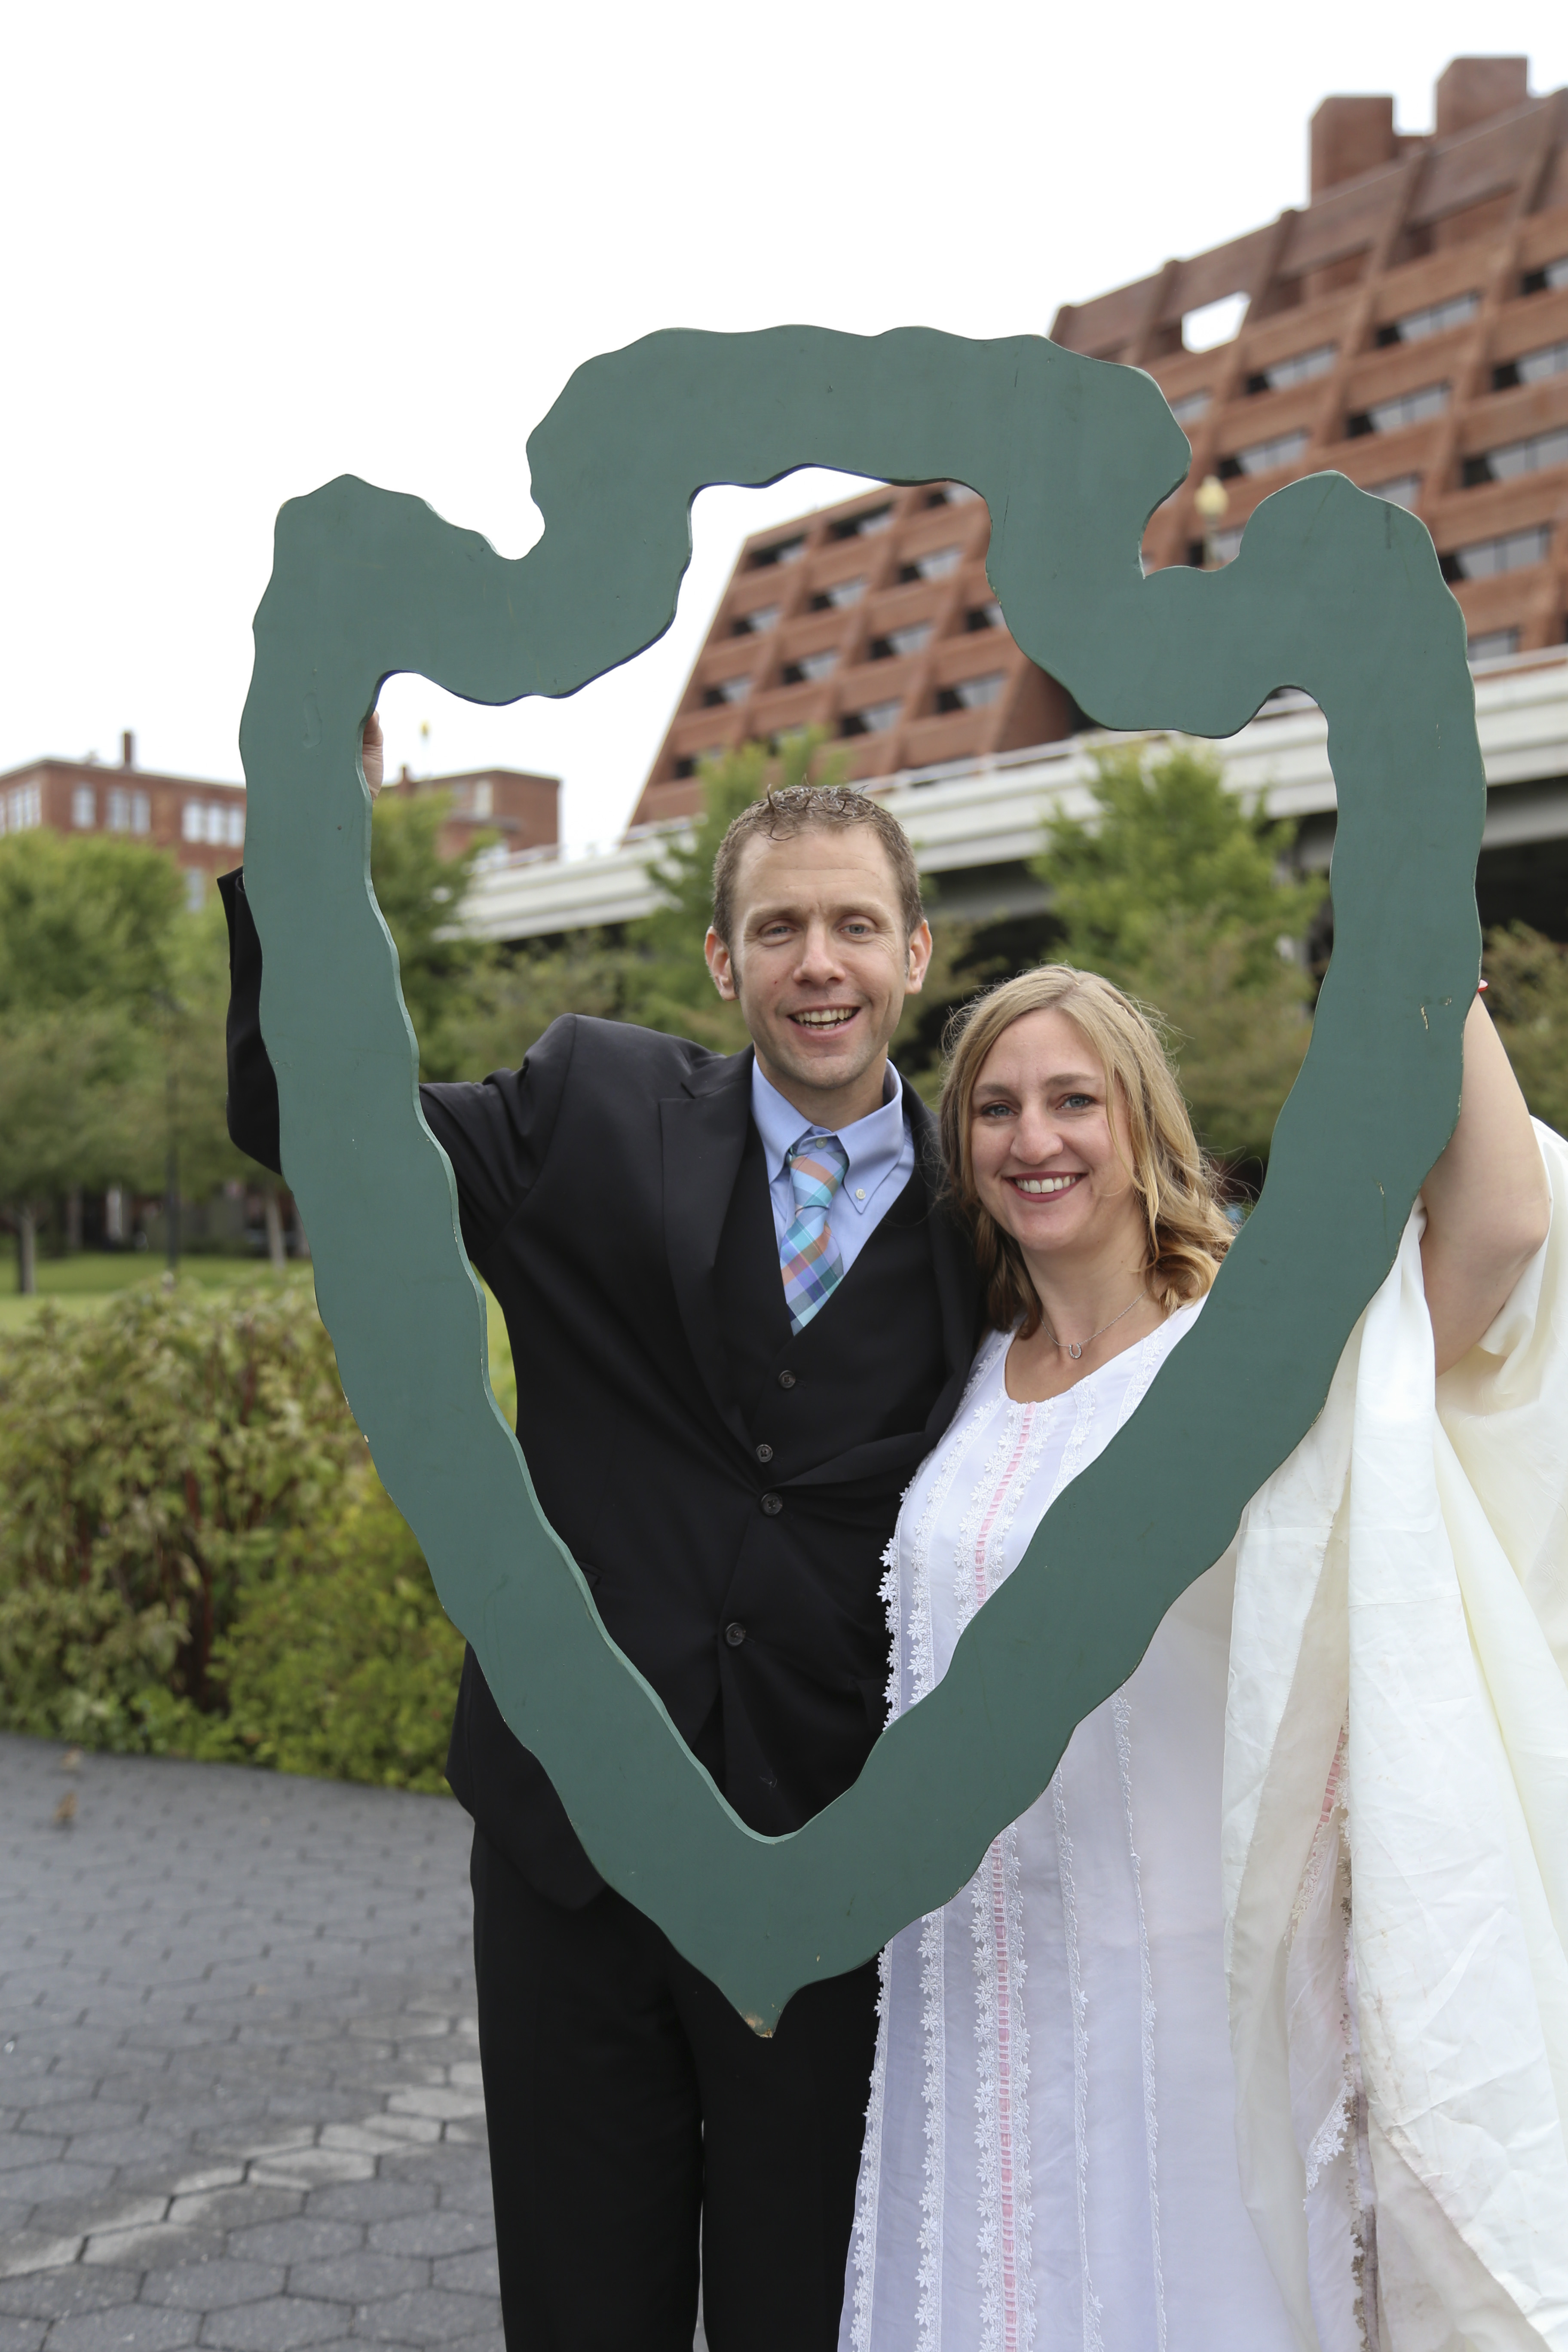 A man and woman in wedding attire hold up a wooden NPS arrow as a photograph is taken of them at Georgetown Waterfront Park in Rock Creek Park.